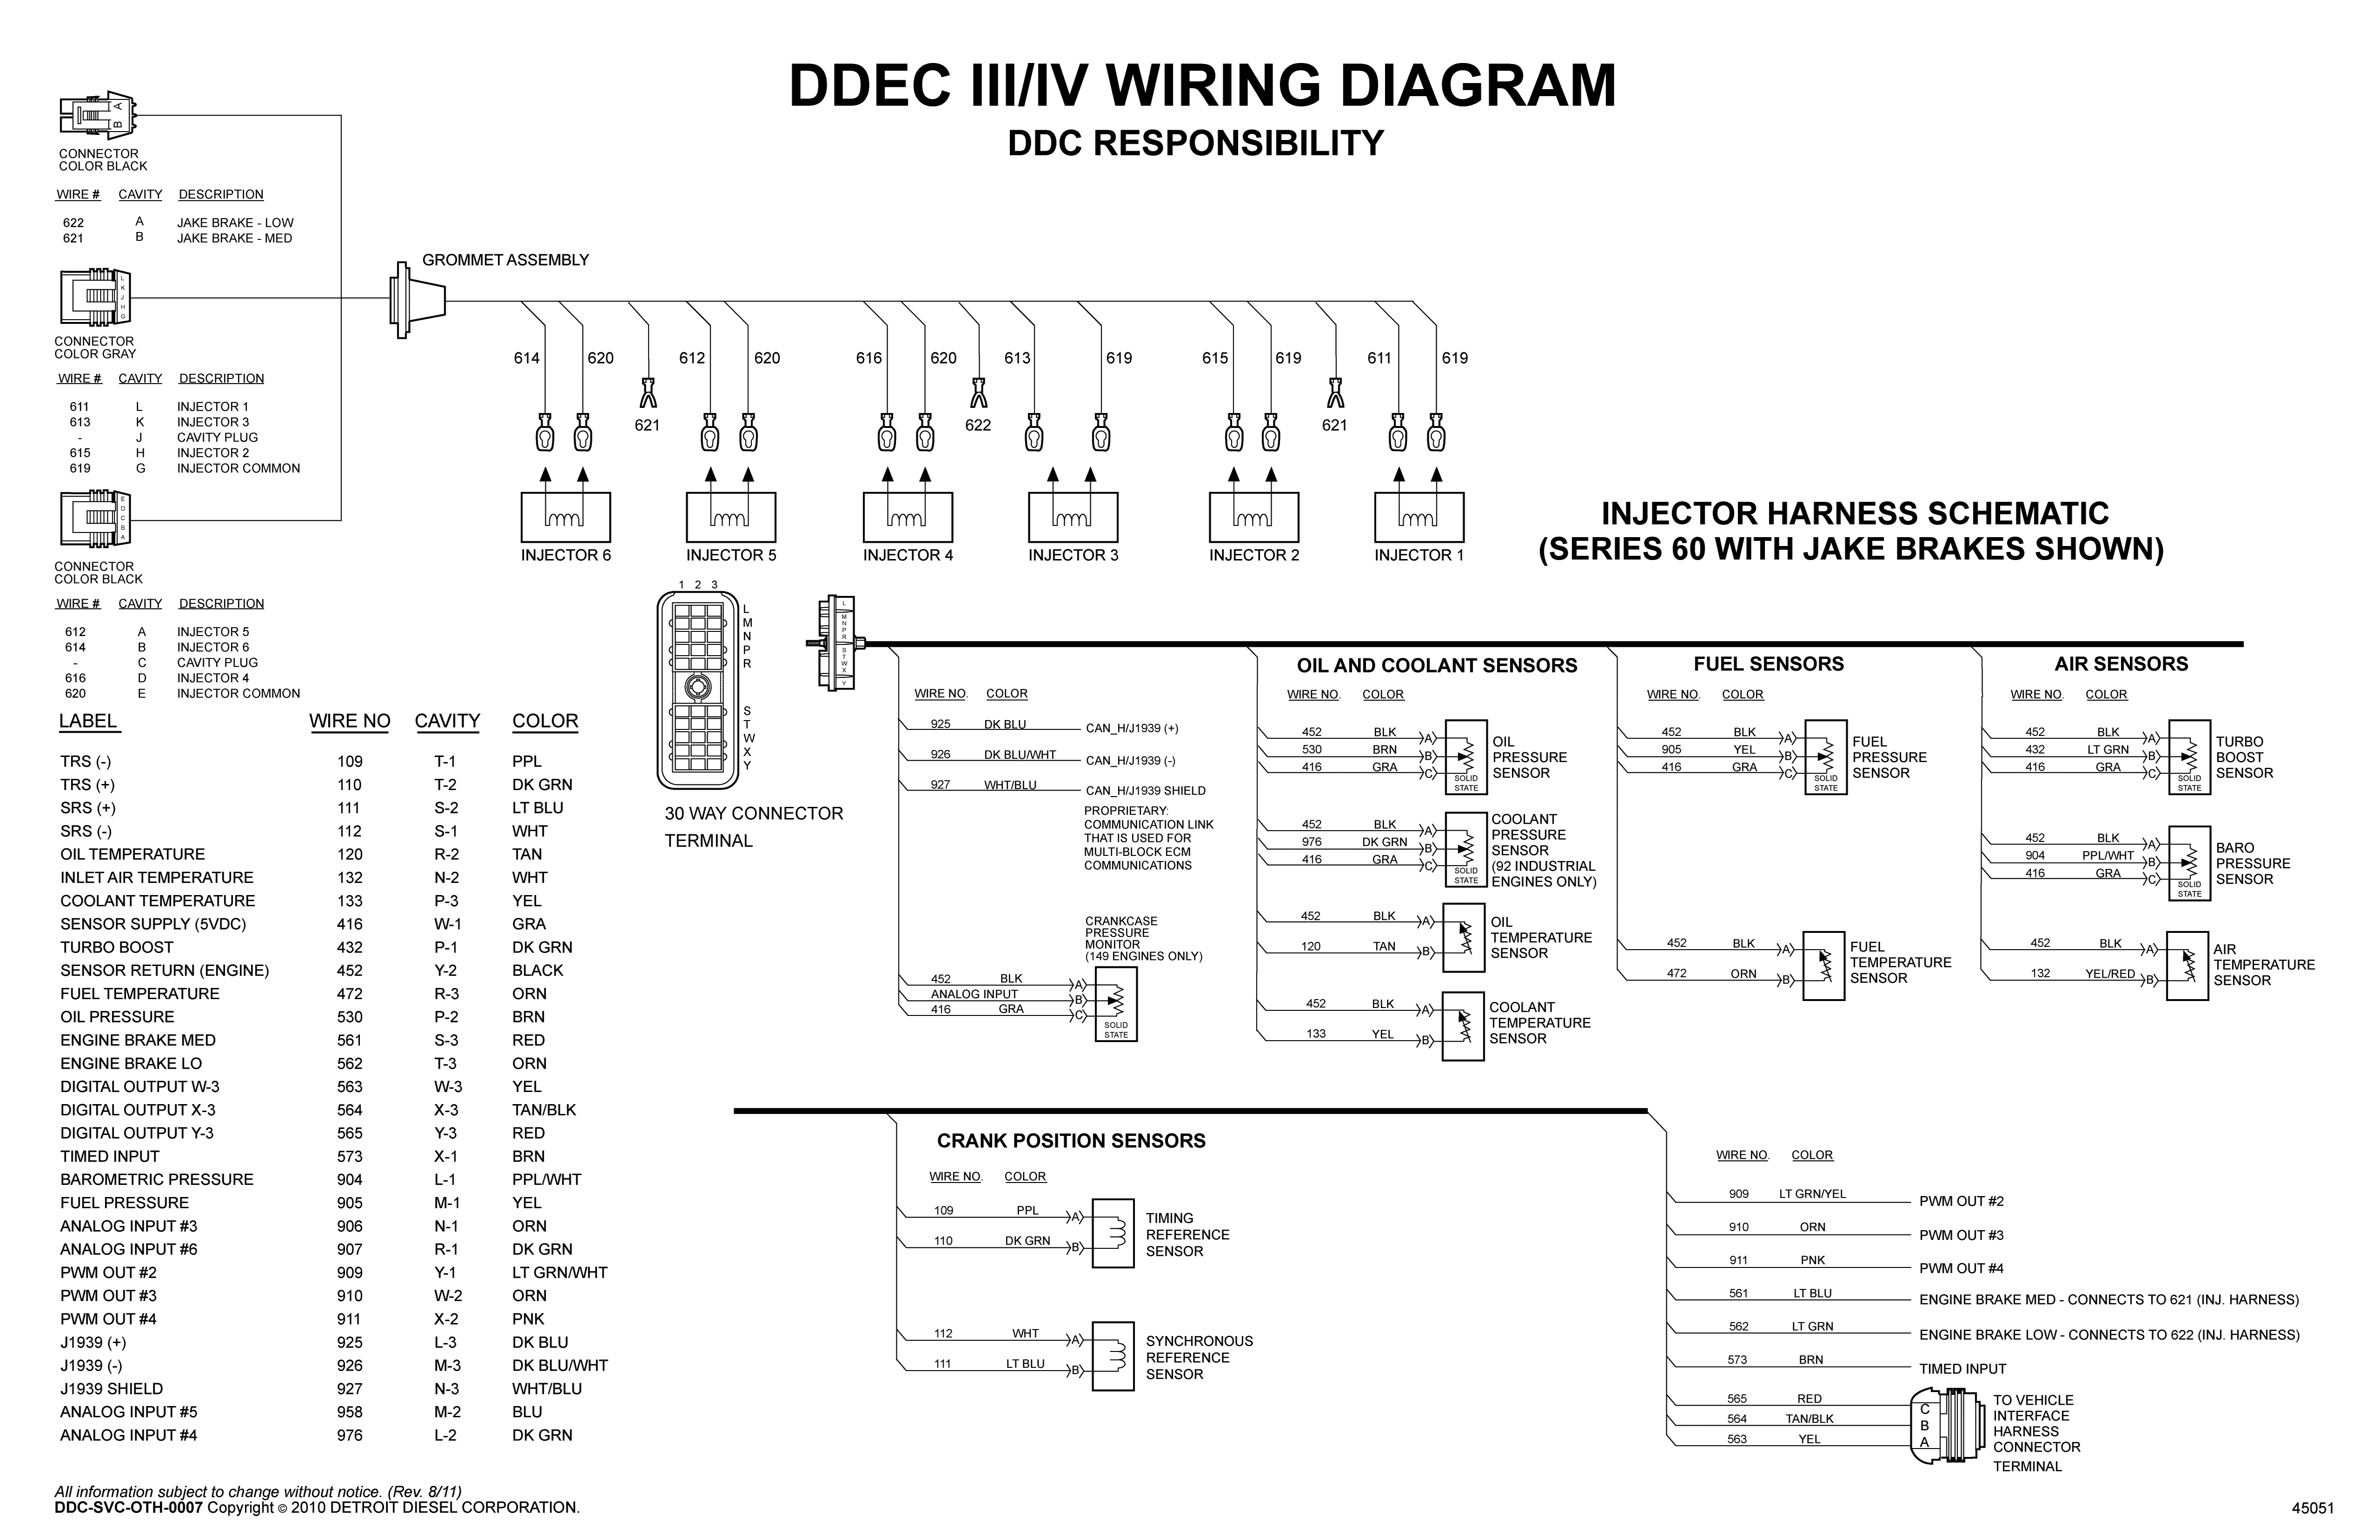 Western Star Wiring Schematics Diagram Libraries Fuse Diagrams Scematicmaybe I Need Help With Engine Brake On